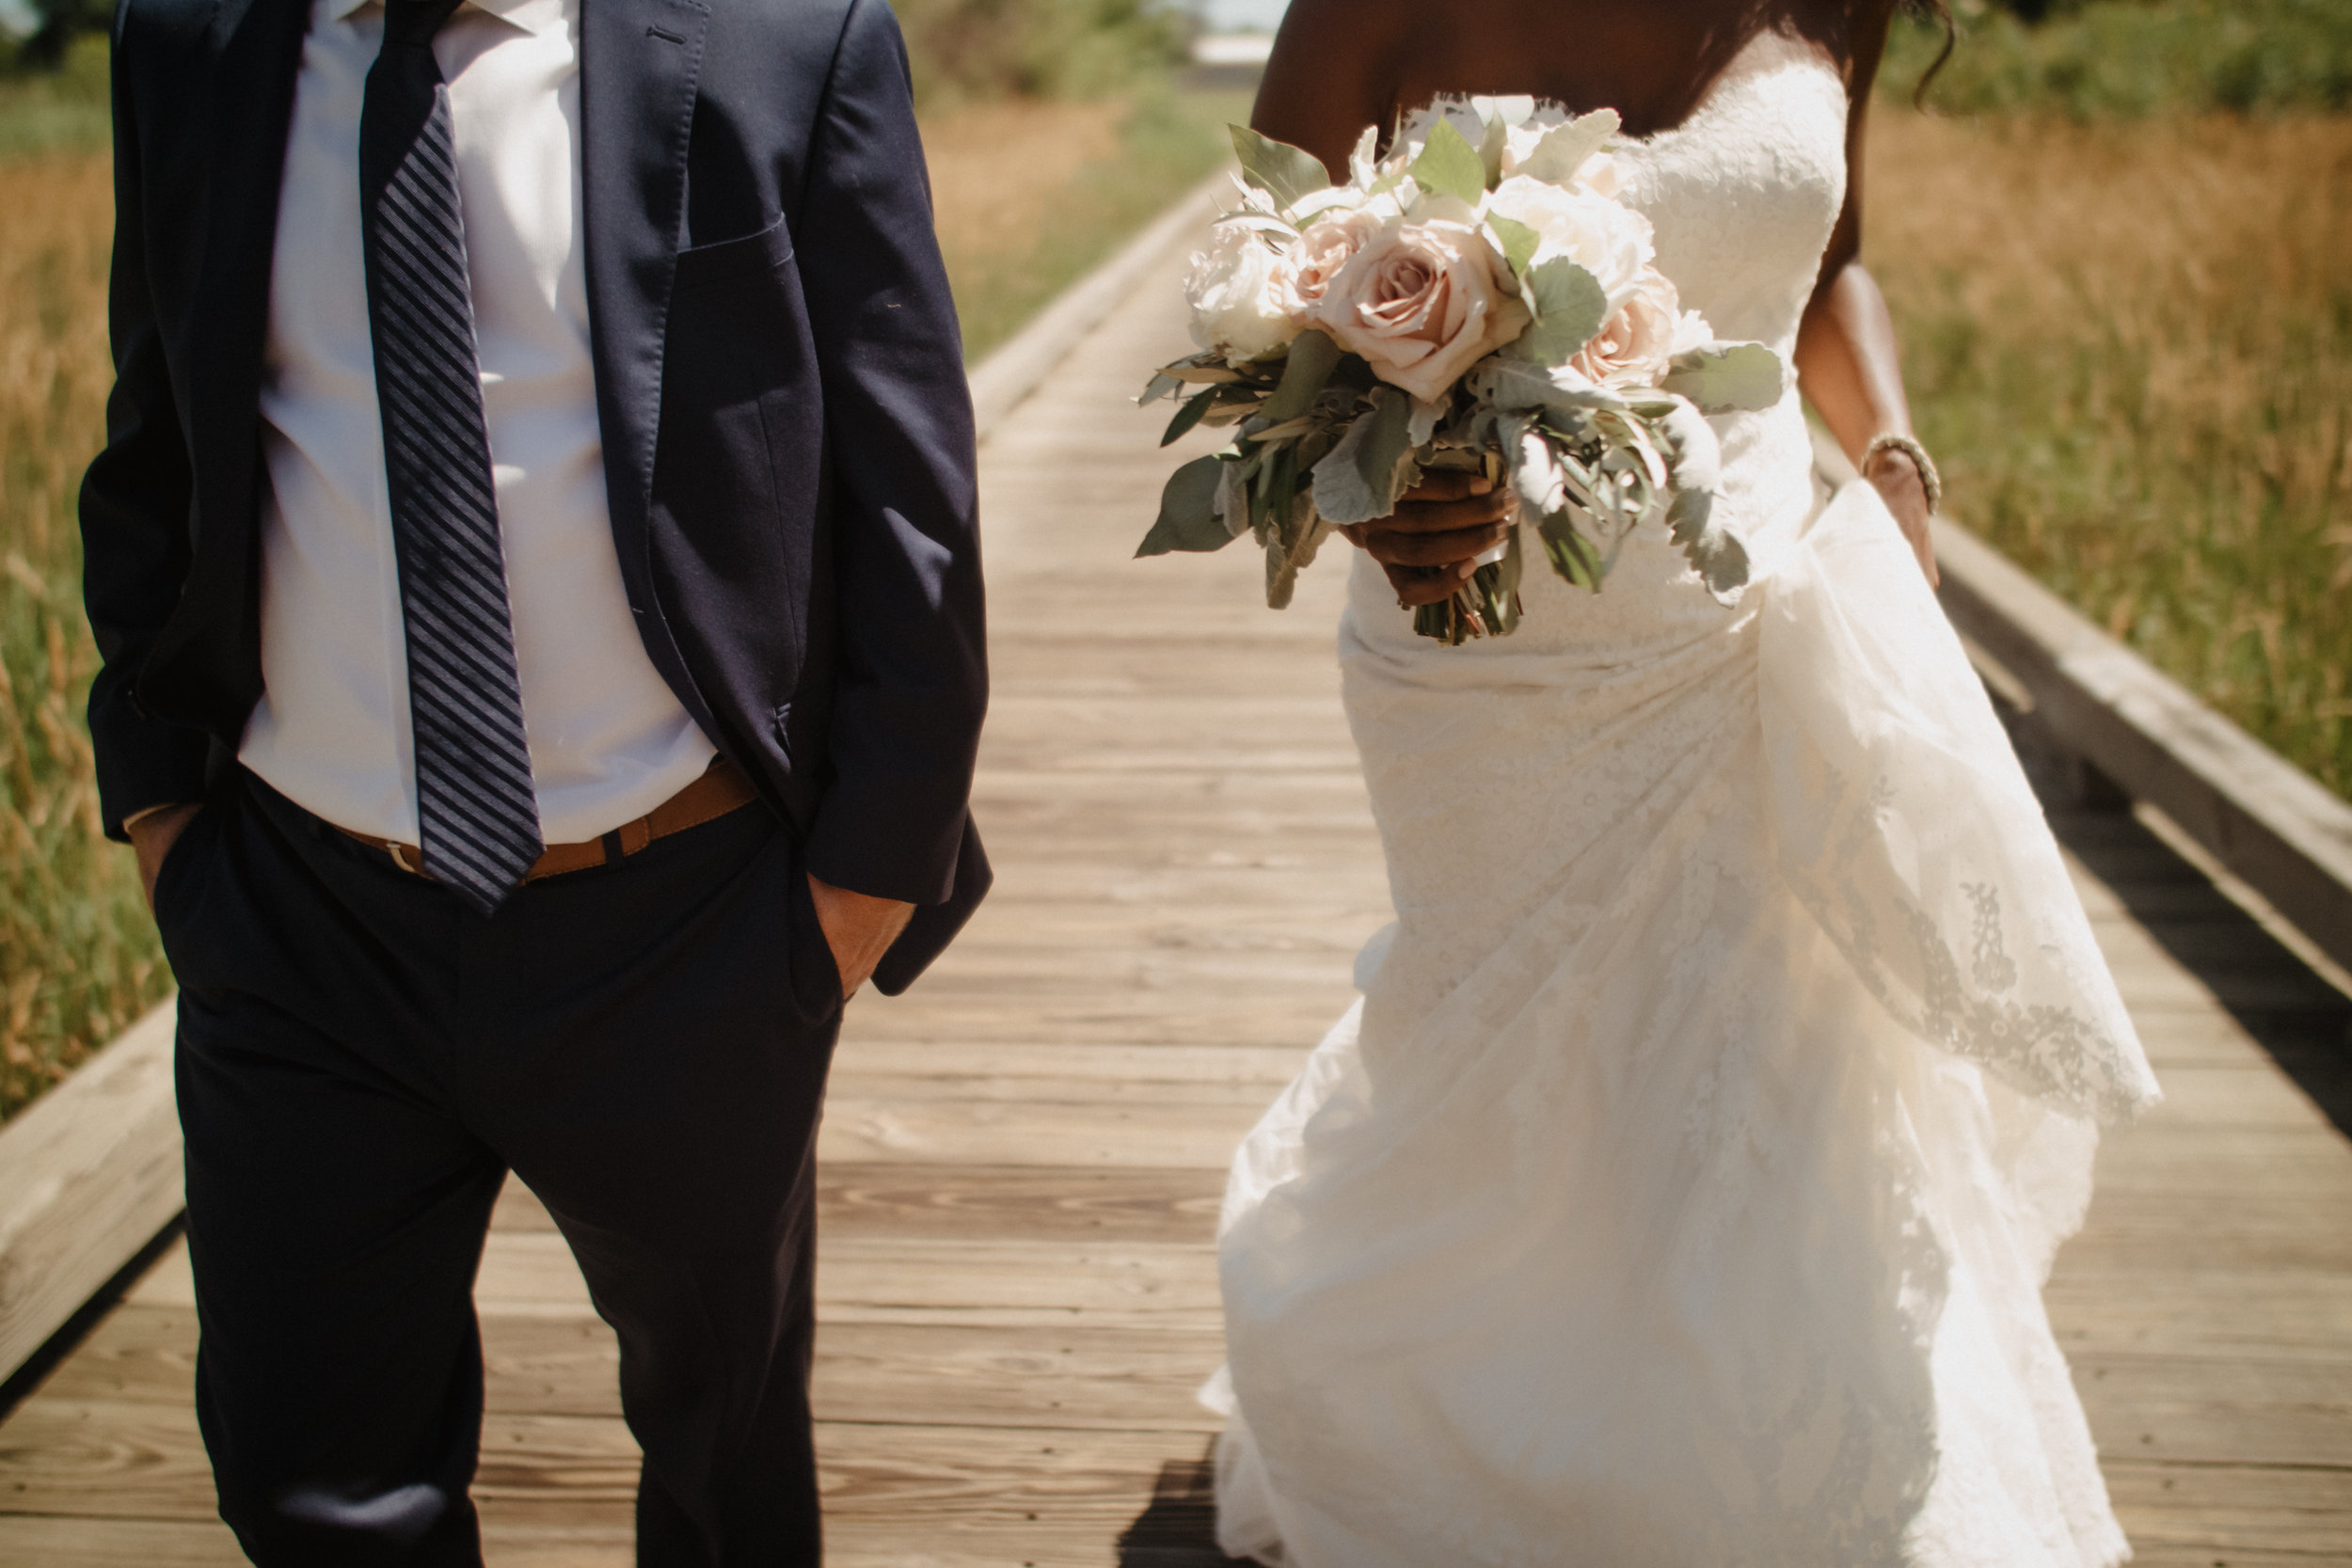 JAHAAN-SCOTT-WARREN-BENTON-HARBOR-WEDDING-PHOTOGRAPGHY_0017.jpg